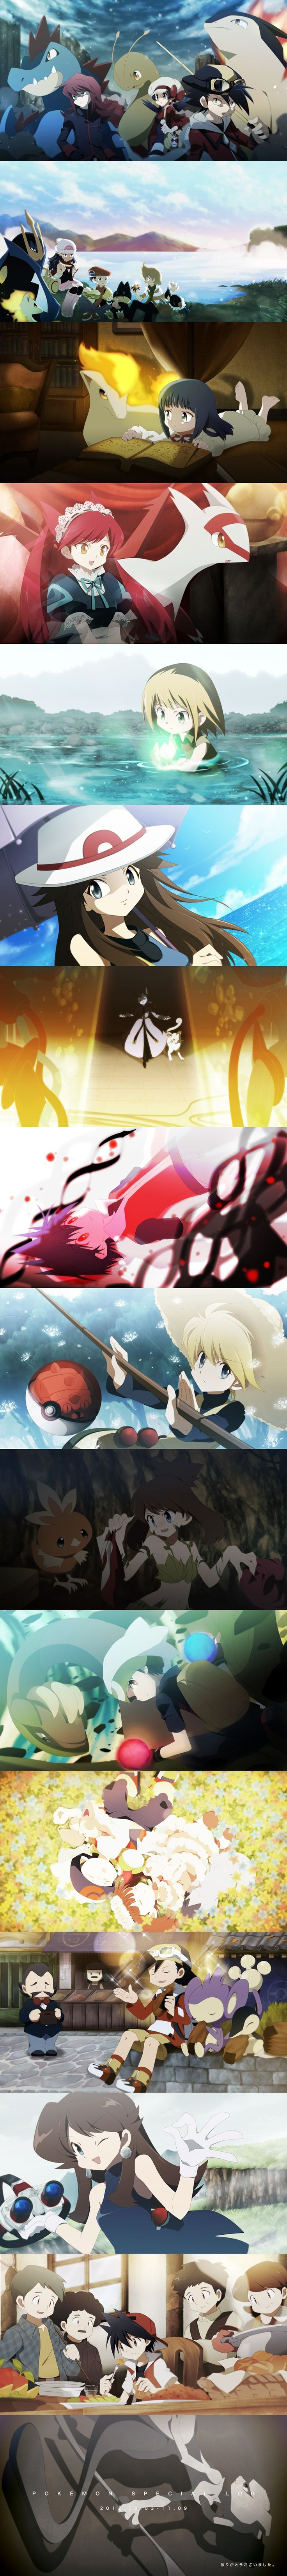 Pokémon SPECIAL/#1645672 - Zerochan THEY NEED TO MAKE THIS AN ANIME